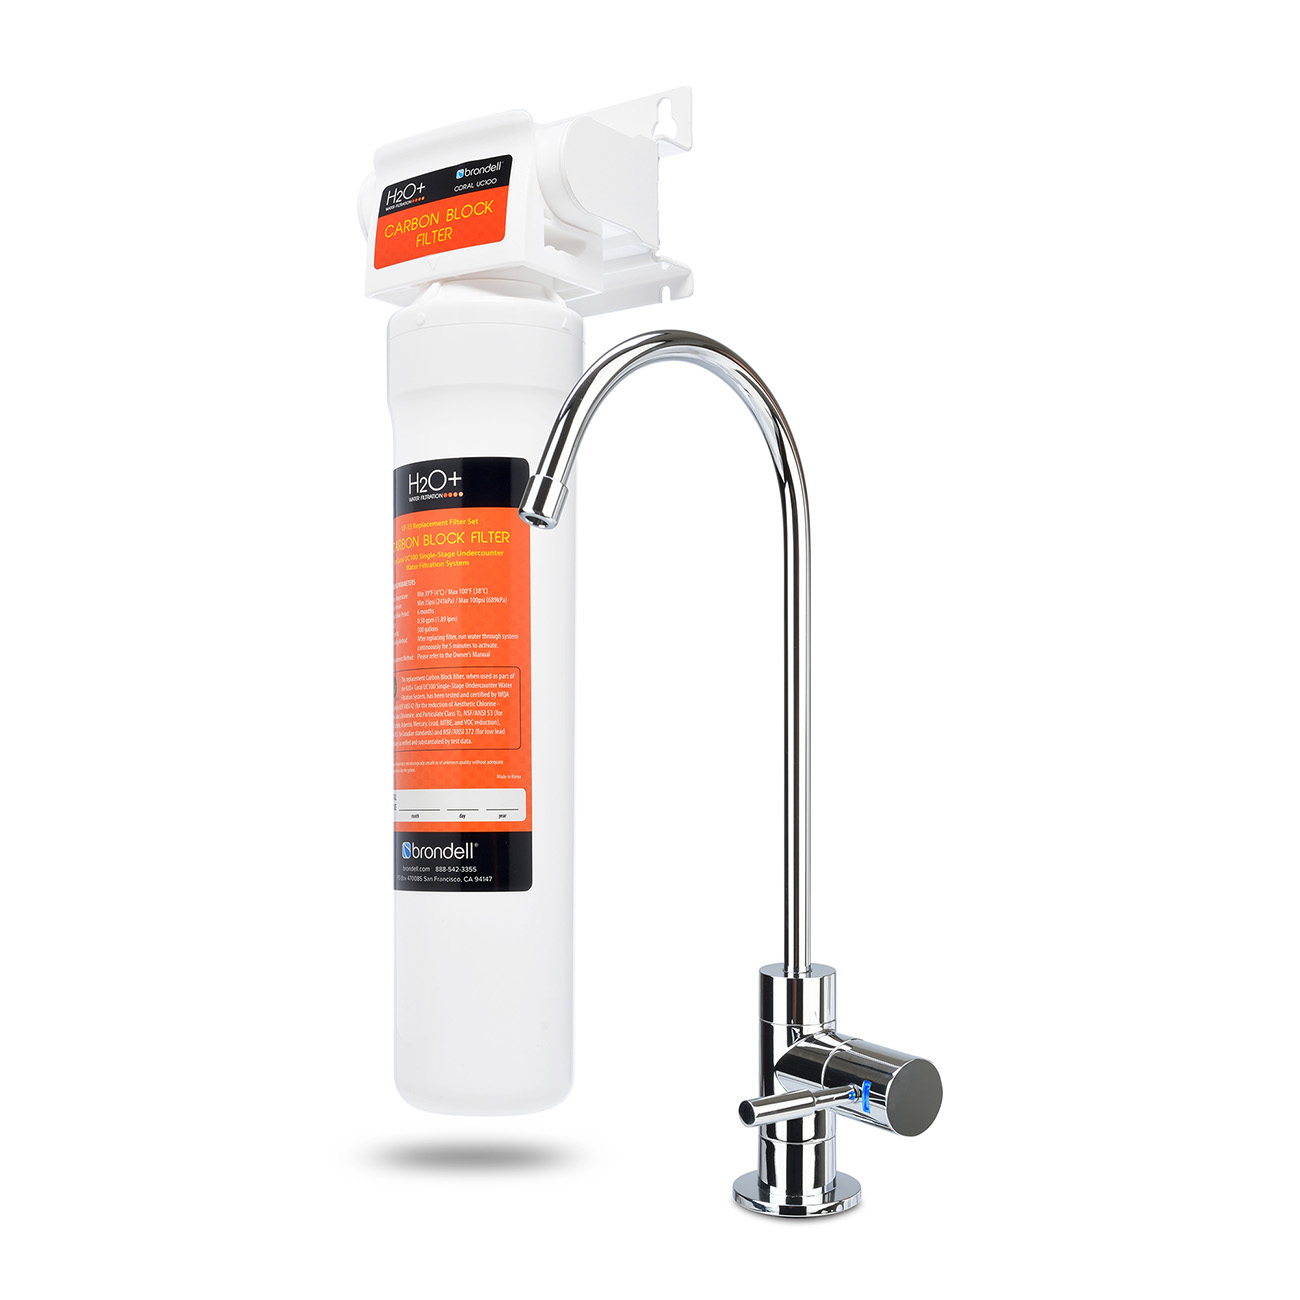 Brondell Coral UC100 Under Counter Water Filter System with a Designer Faucet - Image 1